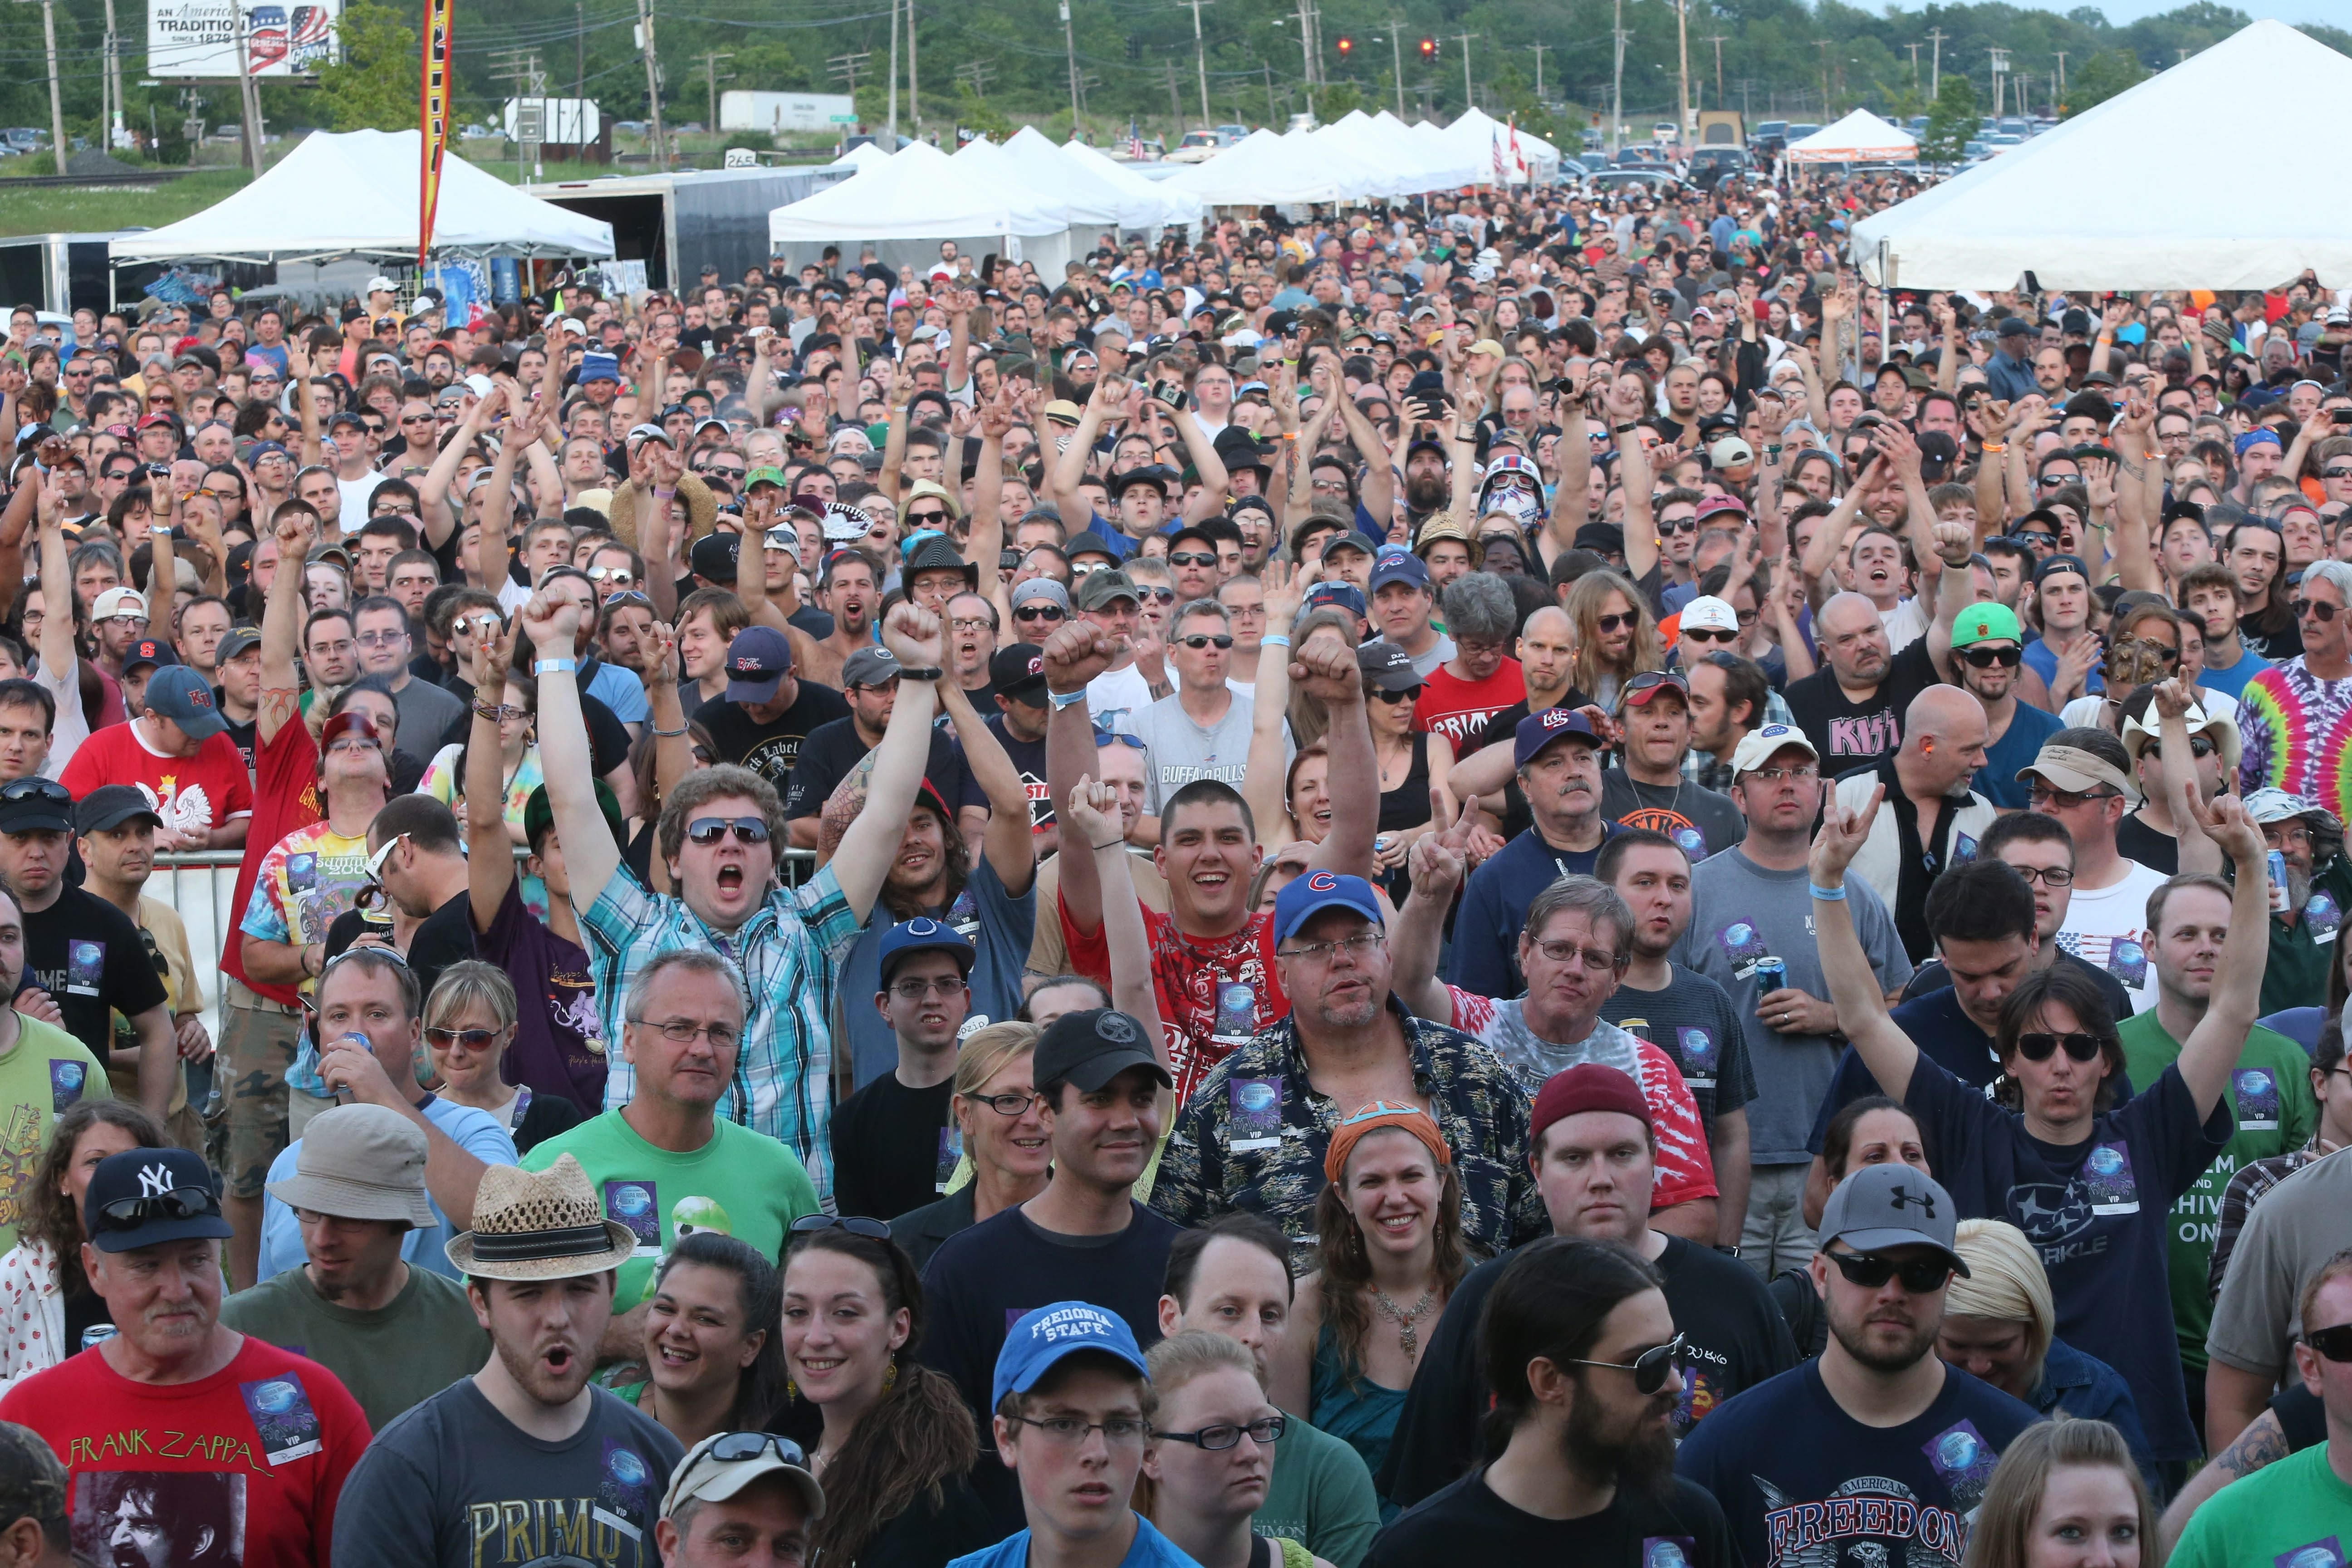 Millenial Primus fans and old-timers sporting Zappa shirts came for Primus' final tour date at Cornerstone's Niagara River Rocks Concert series in North Tonawanda.